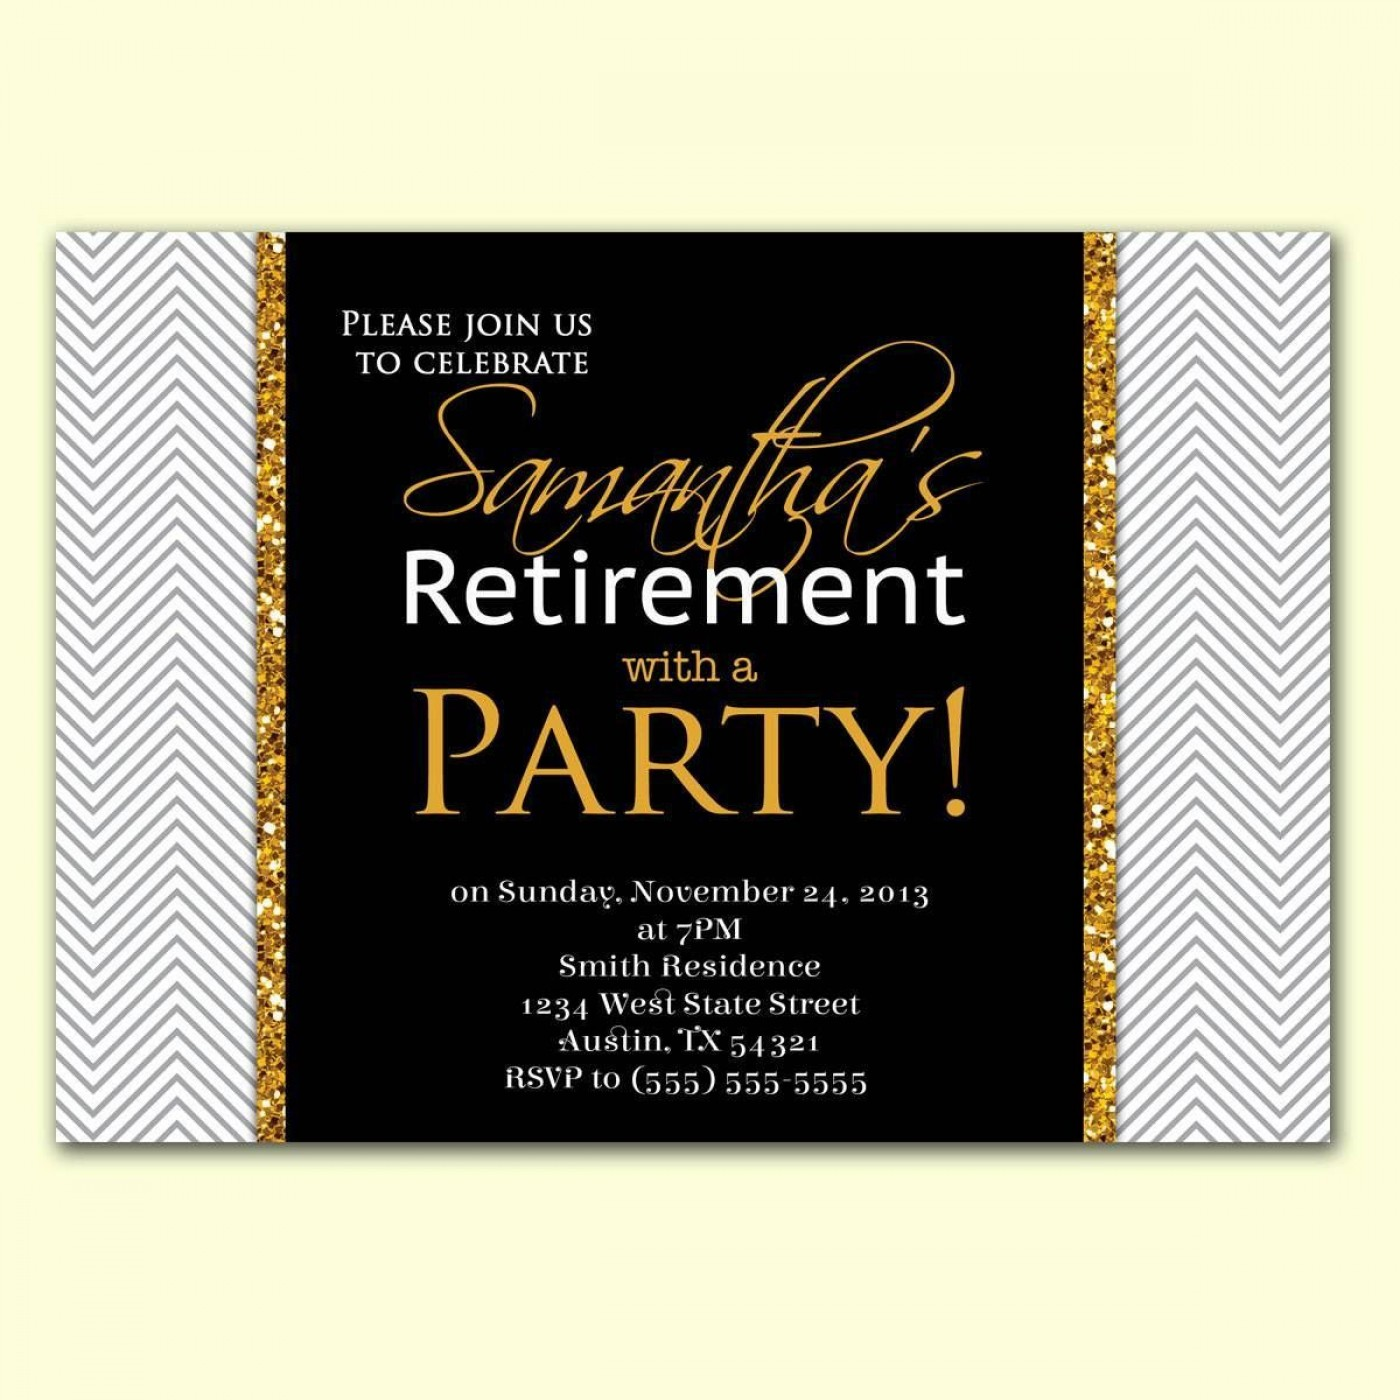 002 Imposing Retirement Party Invite Template Word Free Highest Quality 1400